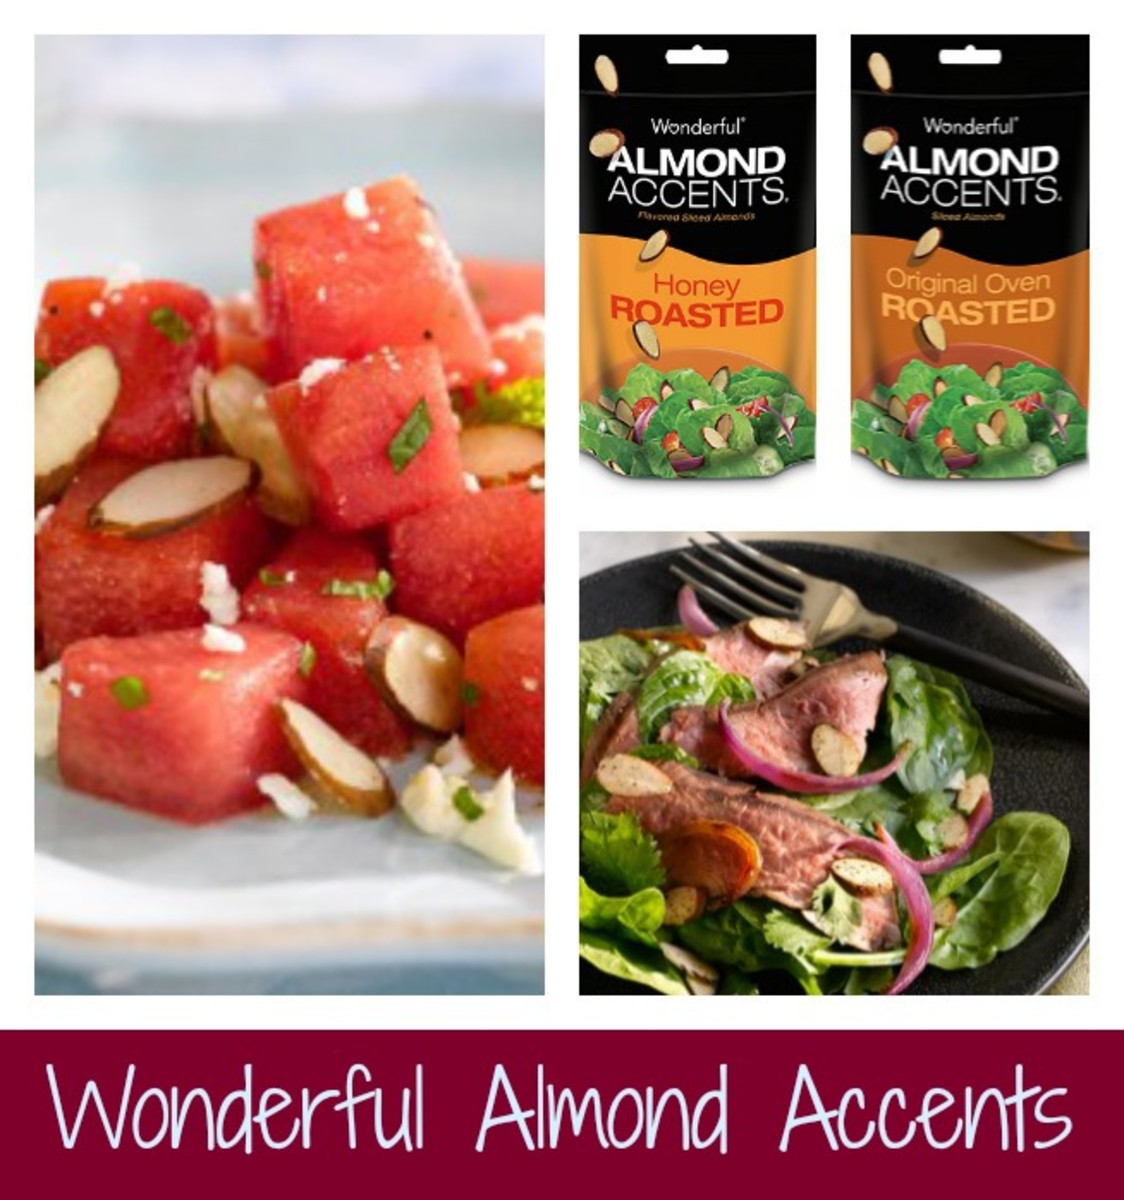 AlmondAccents